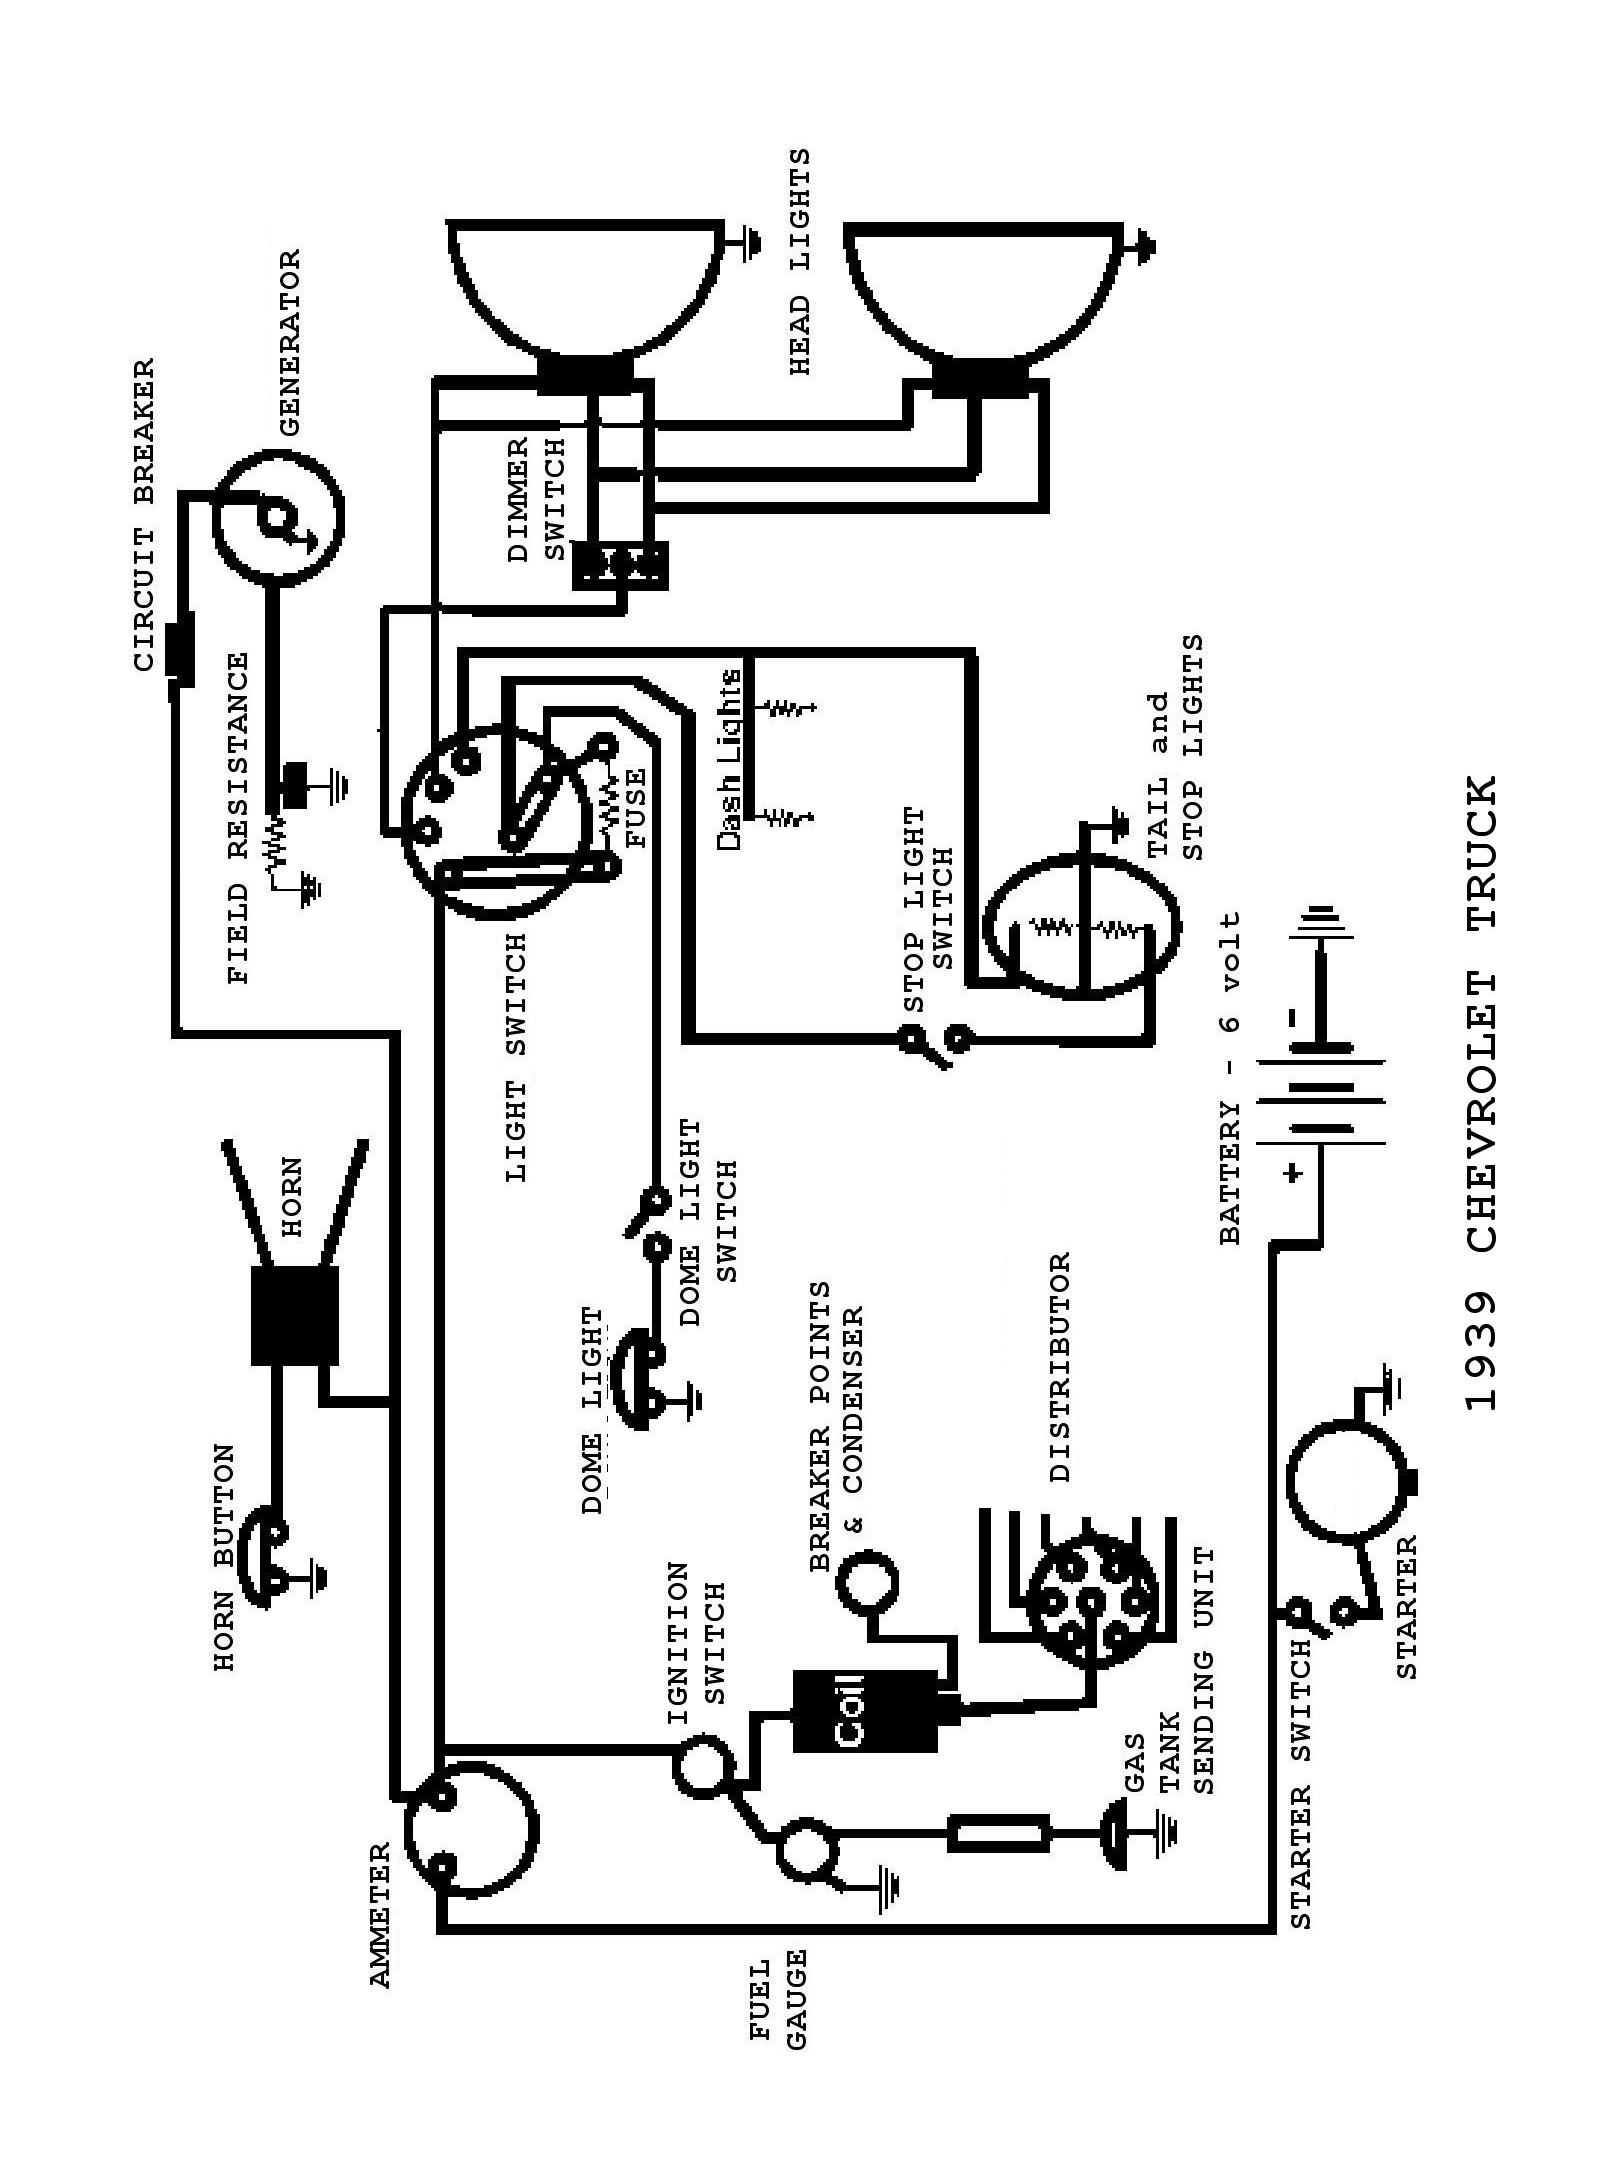 67 Chevy Truck Alternator Wiring Diagram Html likewise Msd Ignition 6200 Wiring Diagram as well Chevy C10 Heater Wiring Diagram moreover Kenworth Truck Wiper Switch Wiring Diagrams additionally IR7q 15546. on 1959 ford truck wire diagram